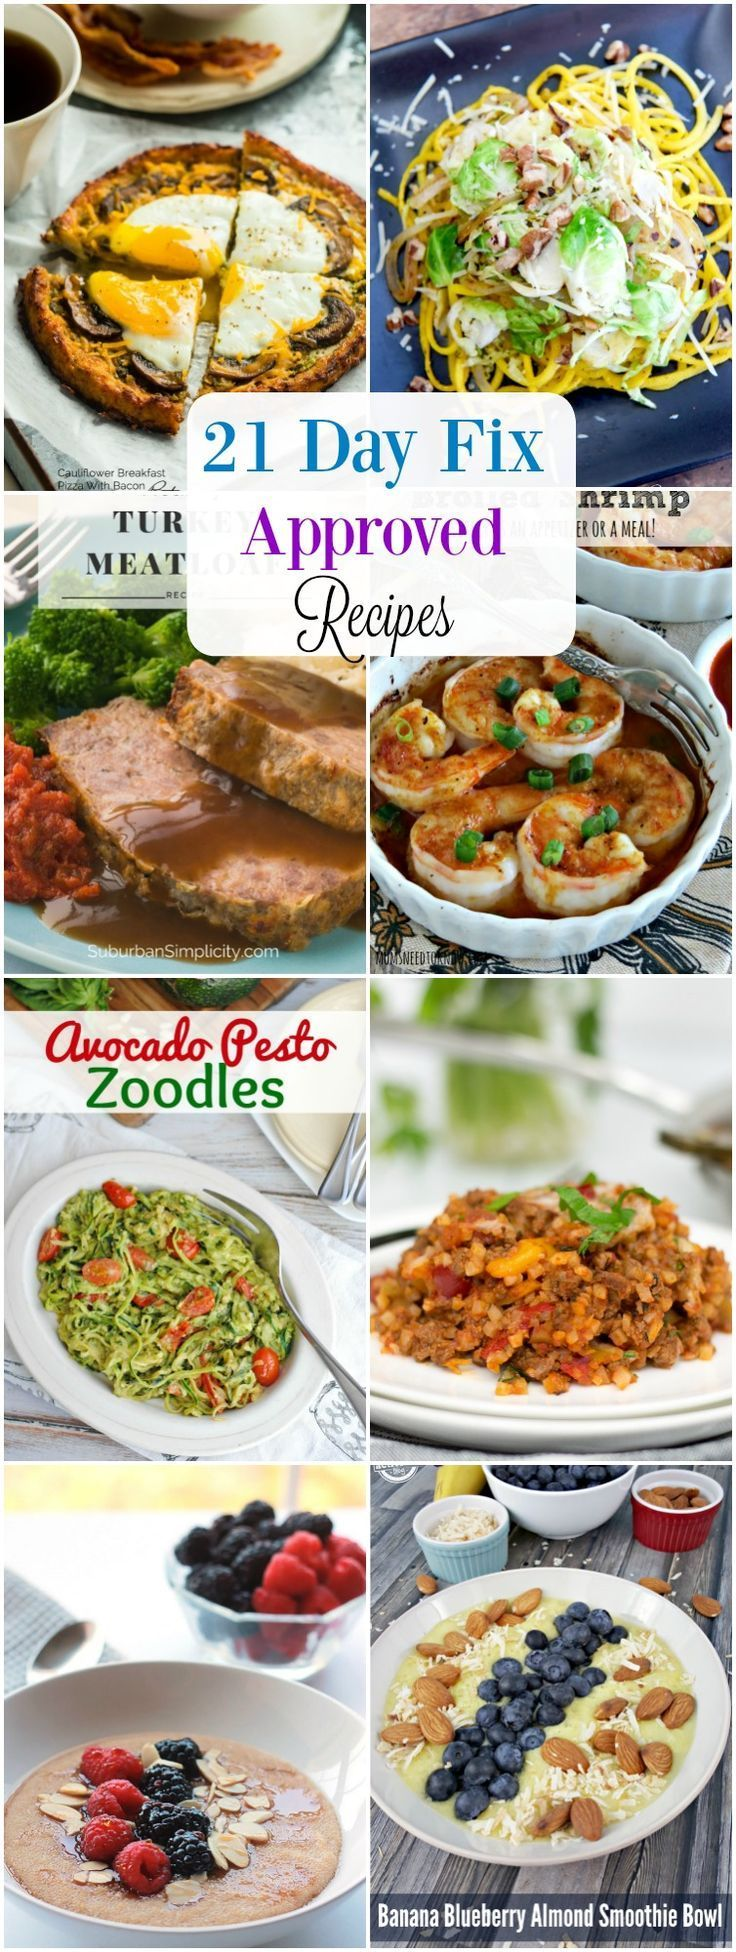 21 Day Fix Approved Recipes for any meal.